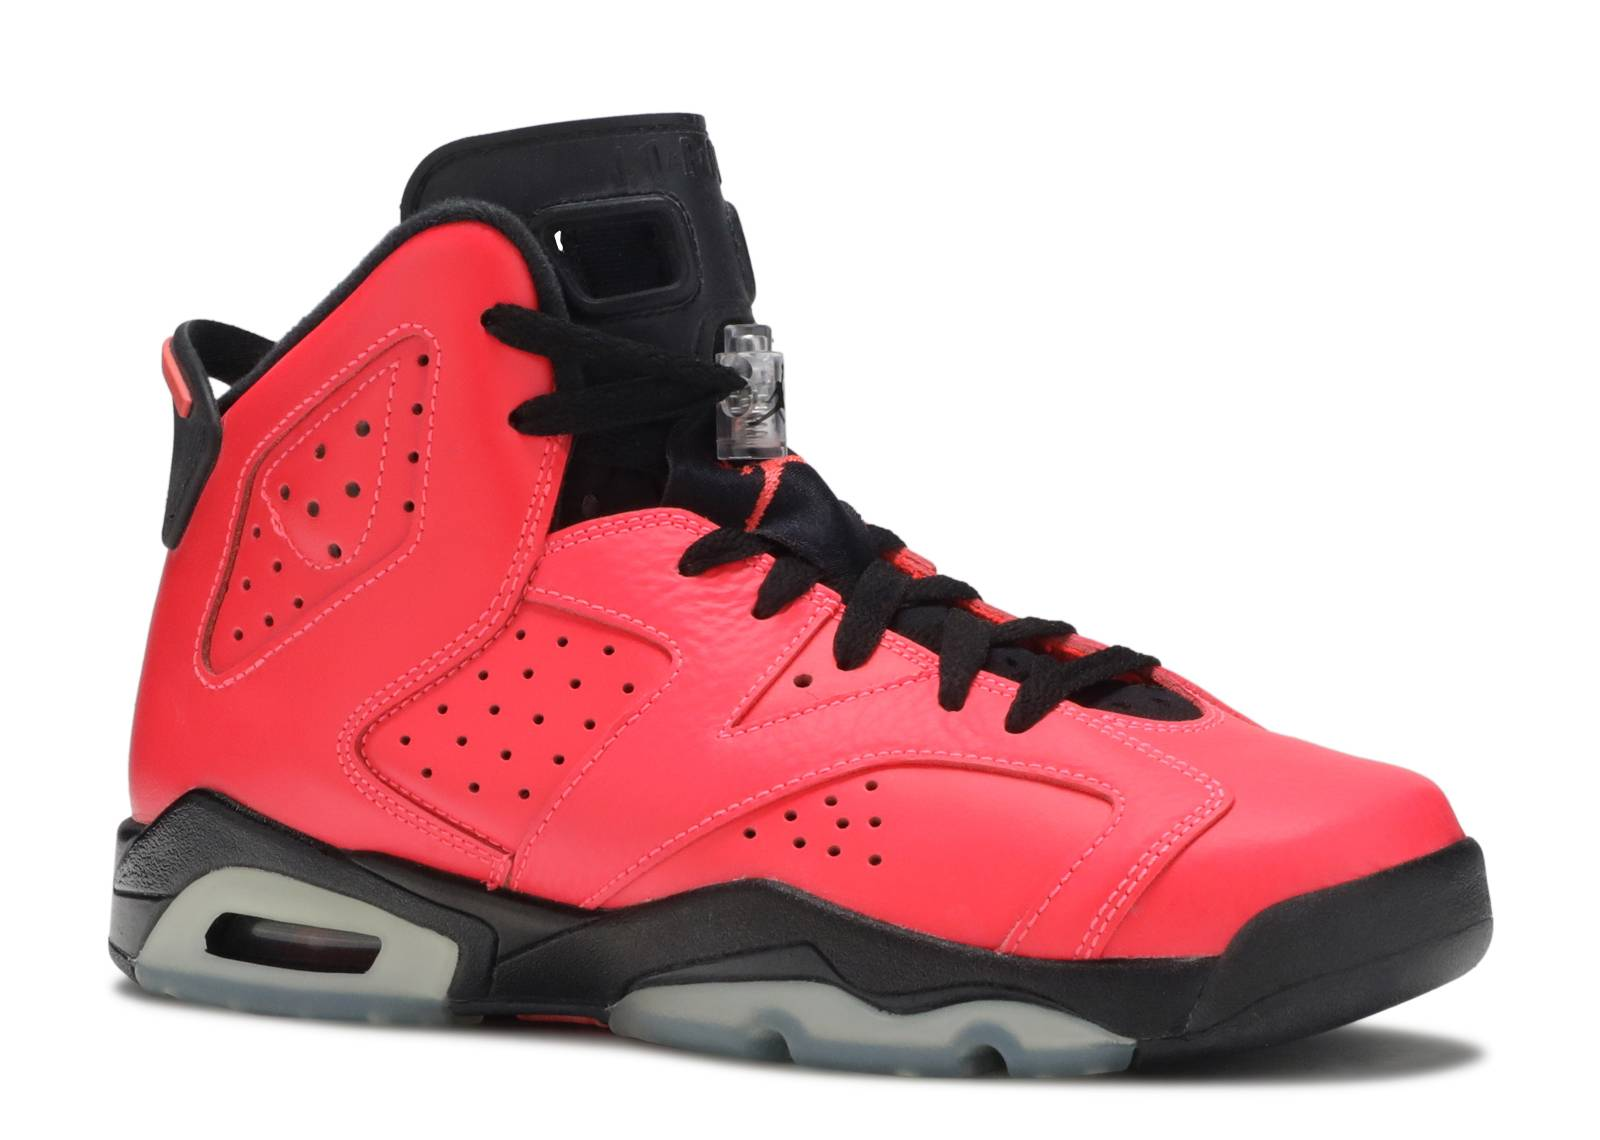 6cd69290e92d91 ... inexpensive air jordan 6 retro infrared 23 merry 9cb8e 20e5e